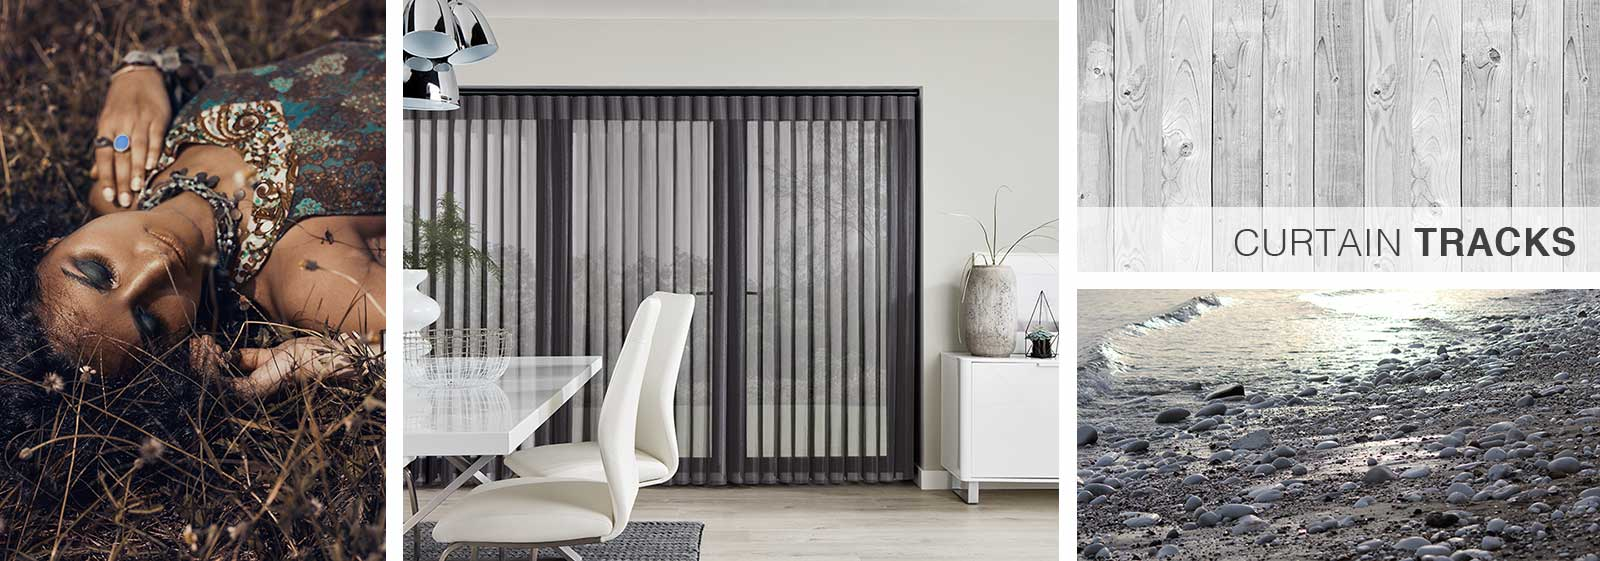 Glide Curtain Tracks, Glide Curtain Tracks, Blind Designs